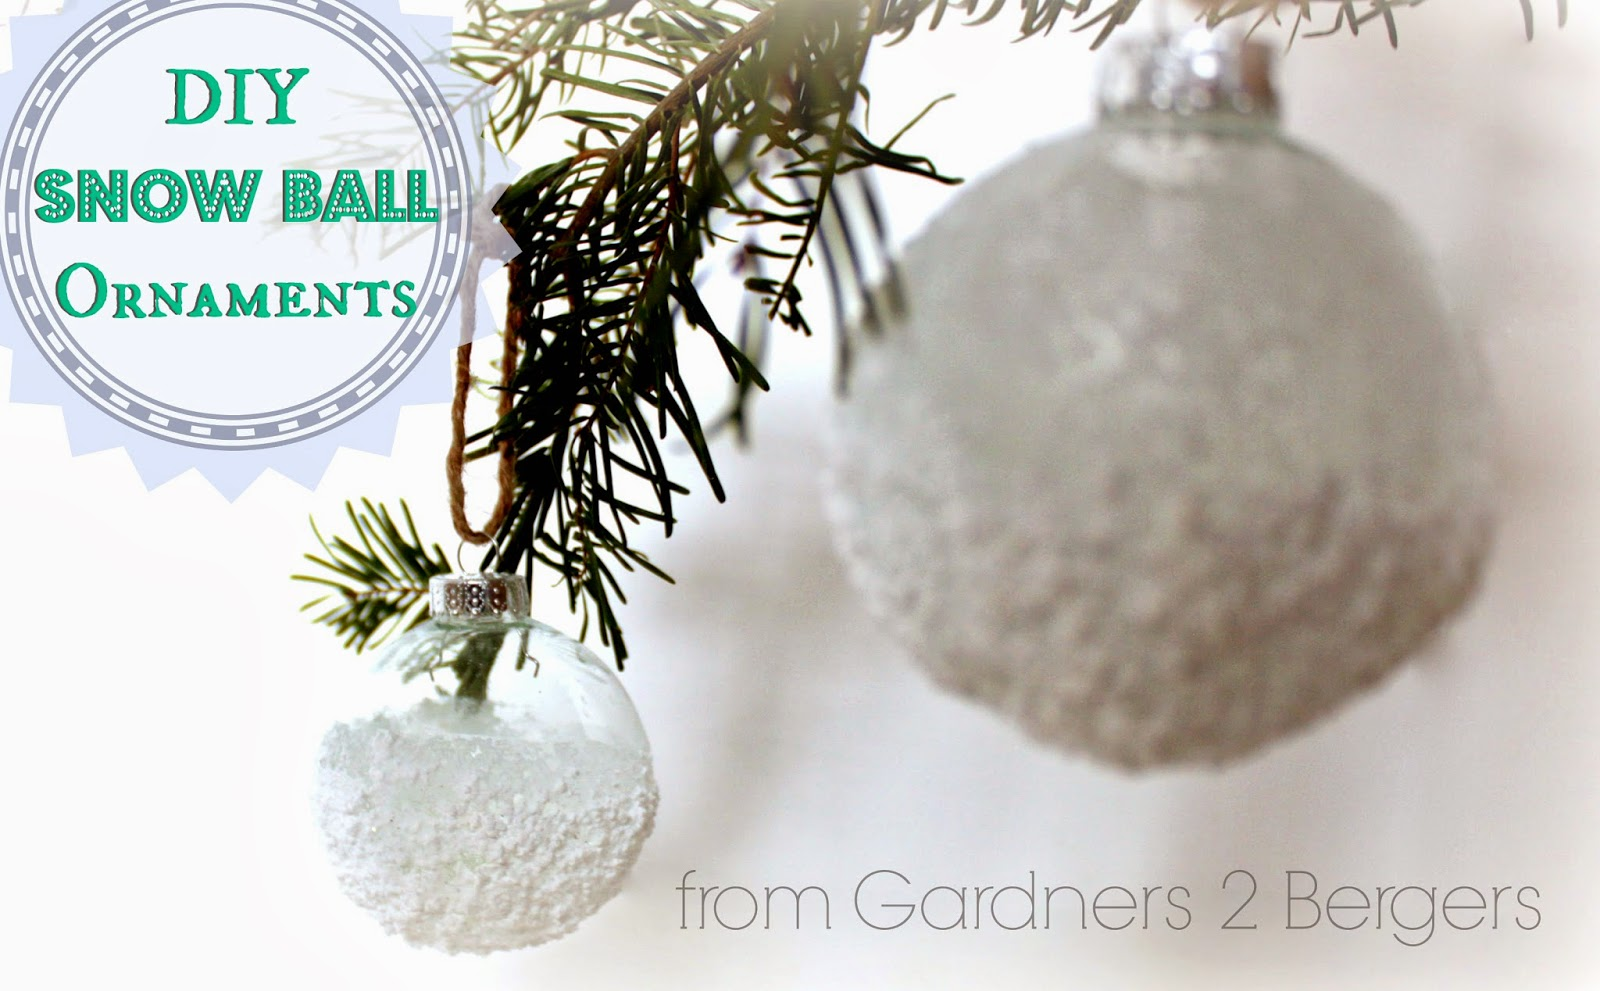 DIY-Snowball-Ornaments-with-Epsom-Salts